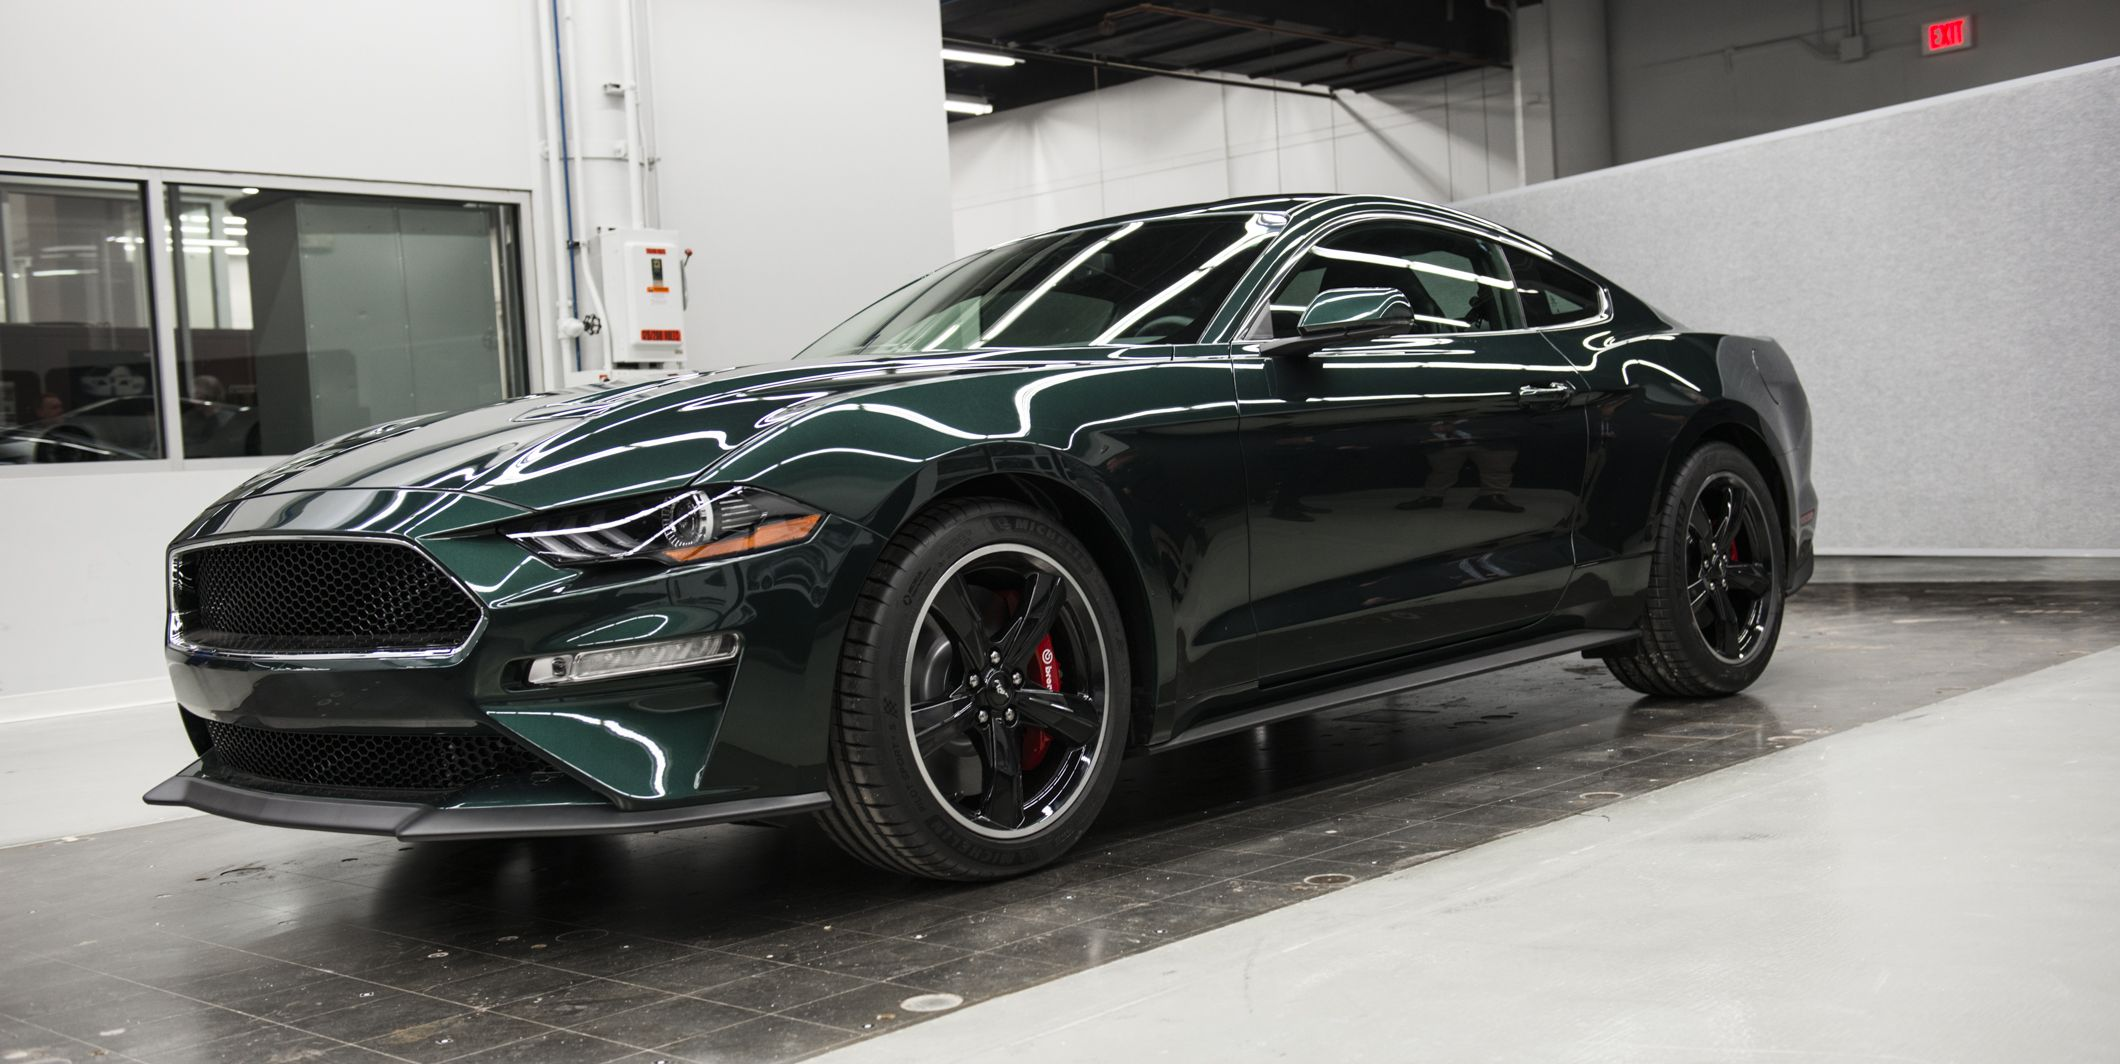 2019 Ford Mustang Bullitt Revealed New Mustang Bullitt